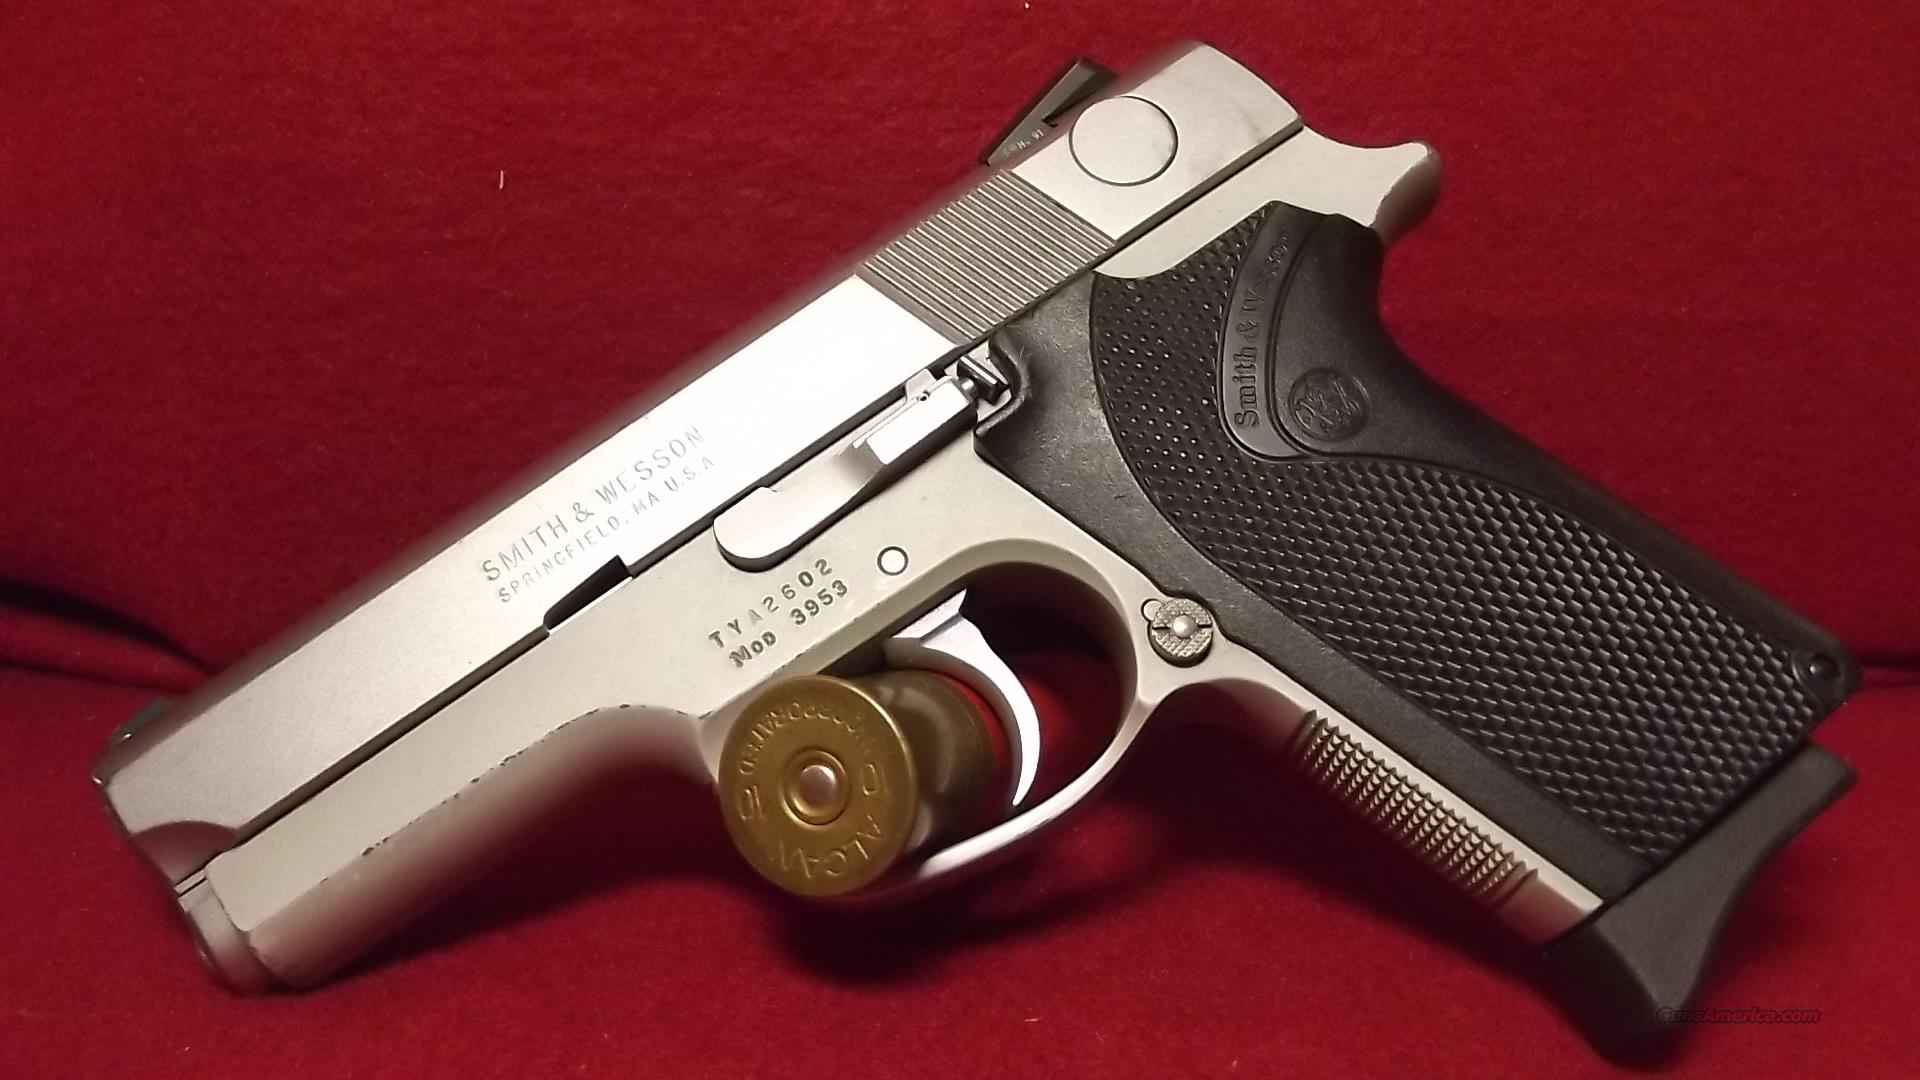 Smith and Wesson Mod 3953 9mm  Guns > Pistols > Smith & Wesson Pistols - Autos > Alloy Frame